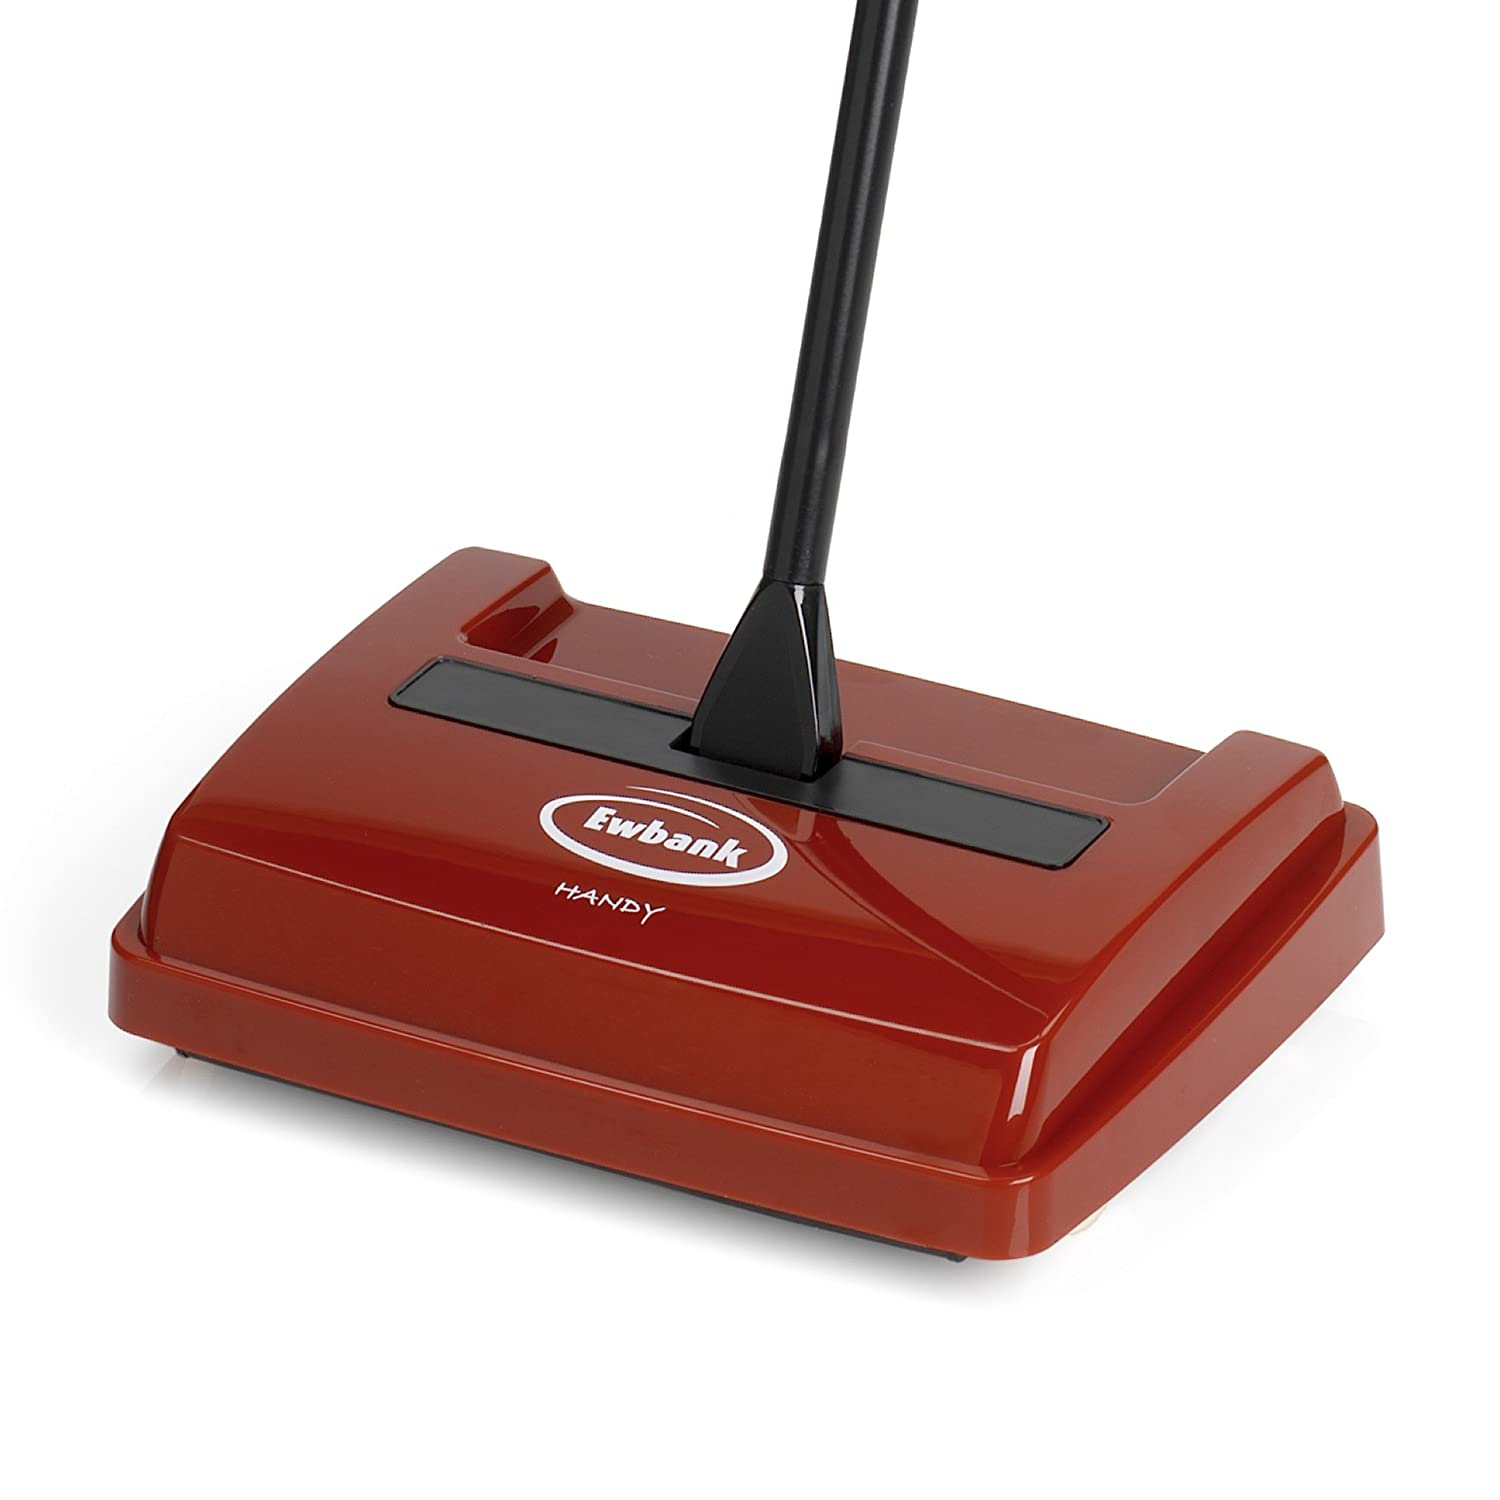 amazoncom ewbank 525 handy floor and carpet sweeper home improvement